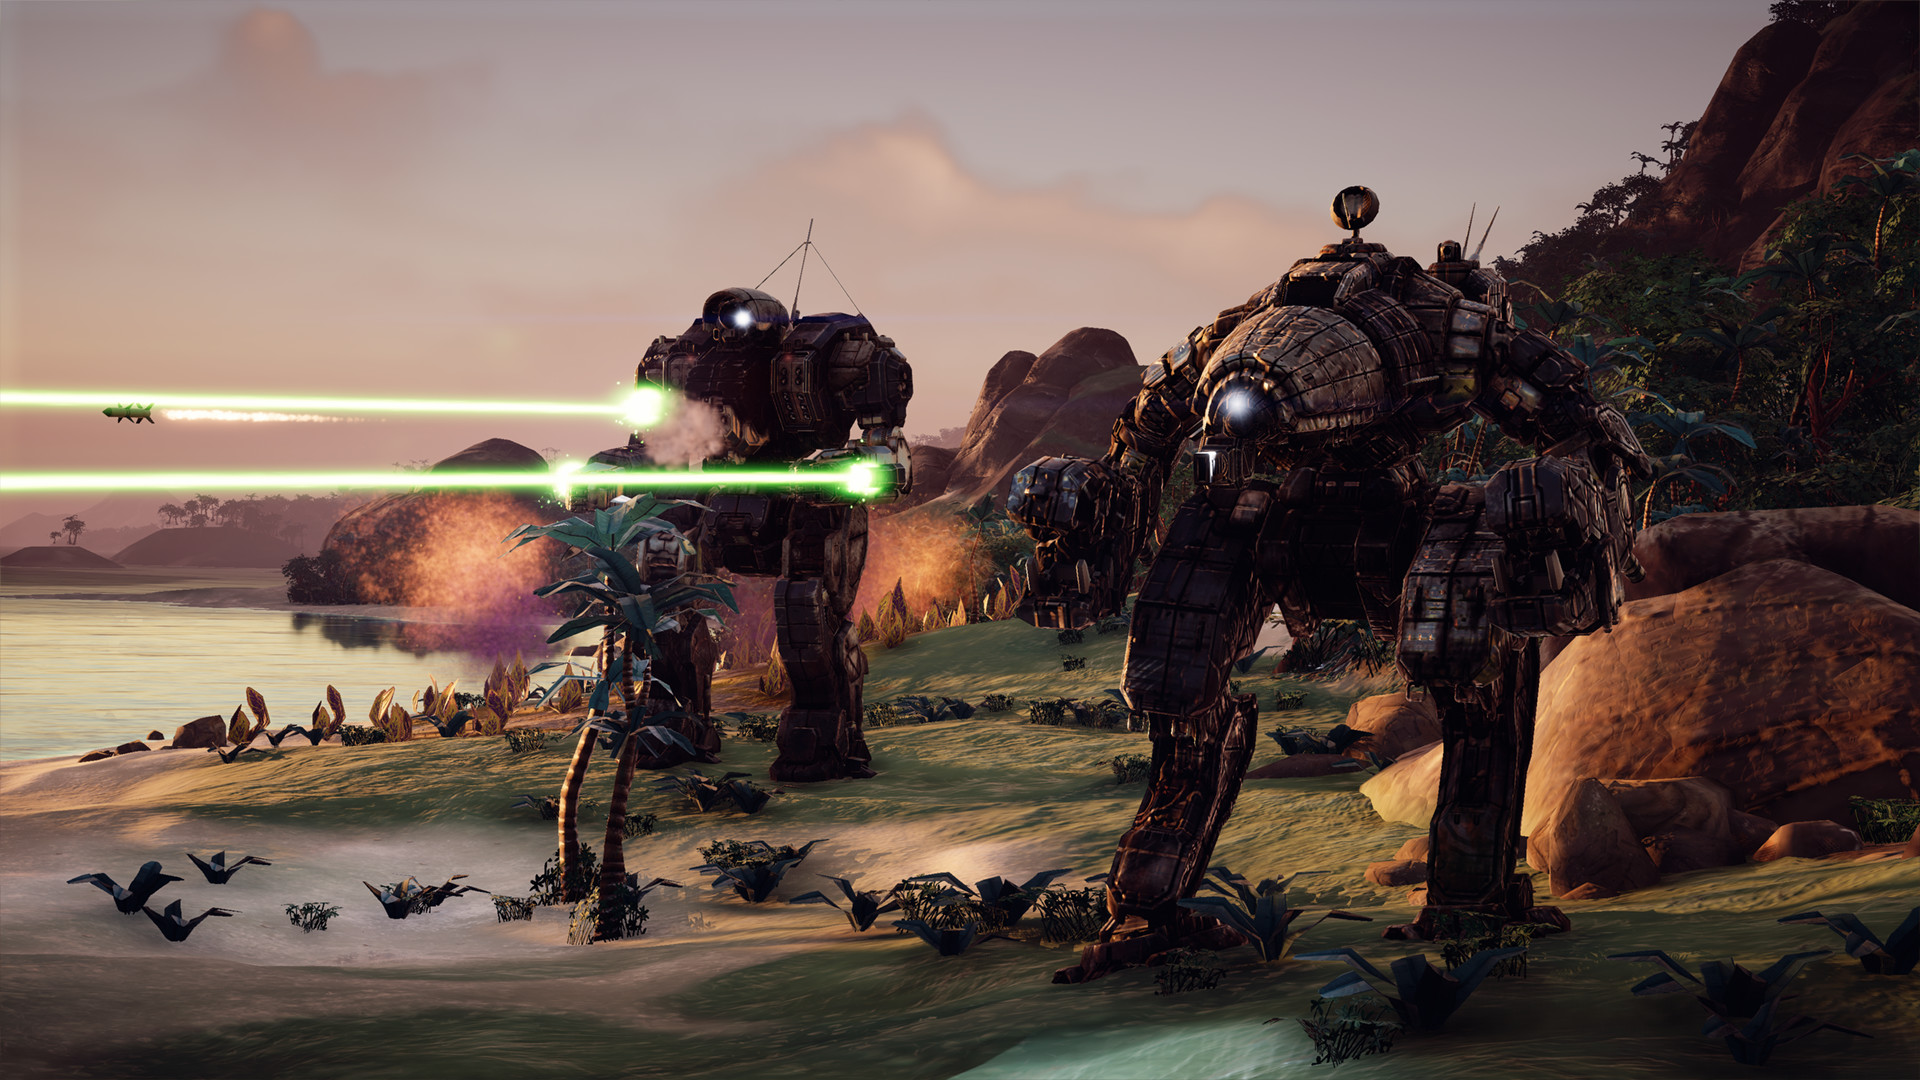 BattleTech's expansion will add 30 hours to the game in late